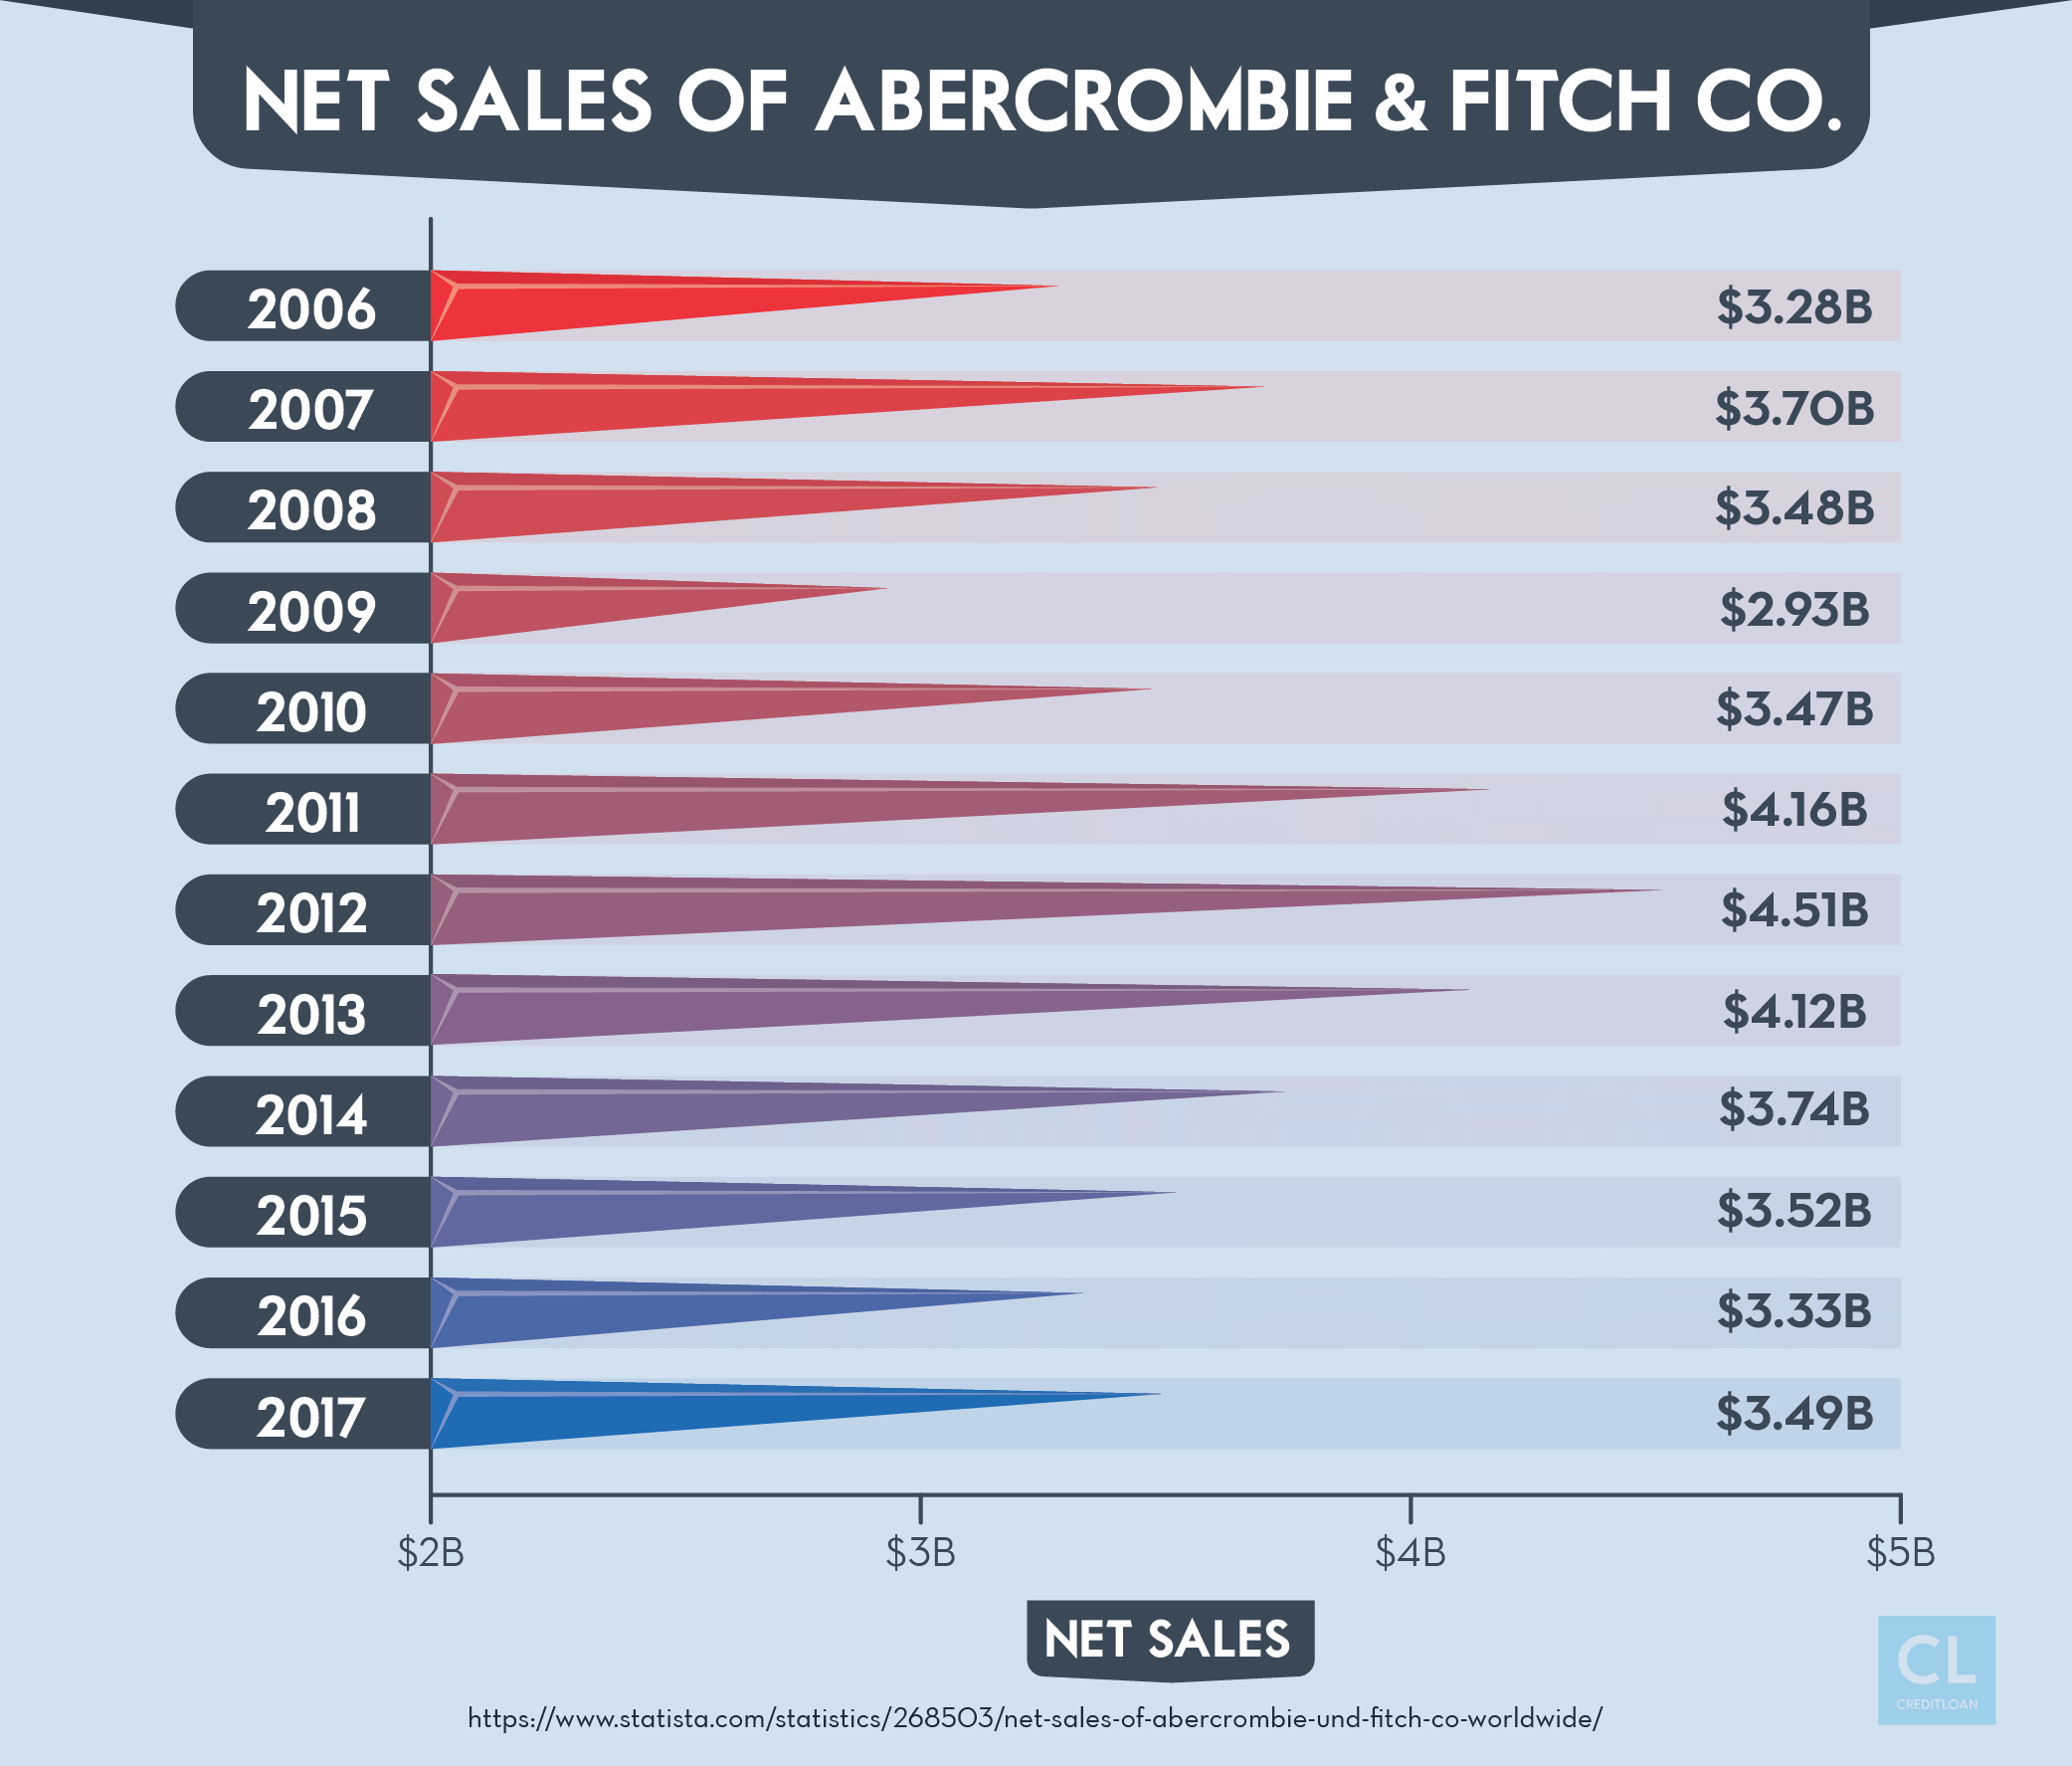 Net Sales of Abercrombie & Fitch Co. from 2006-2017